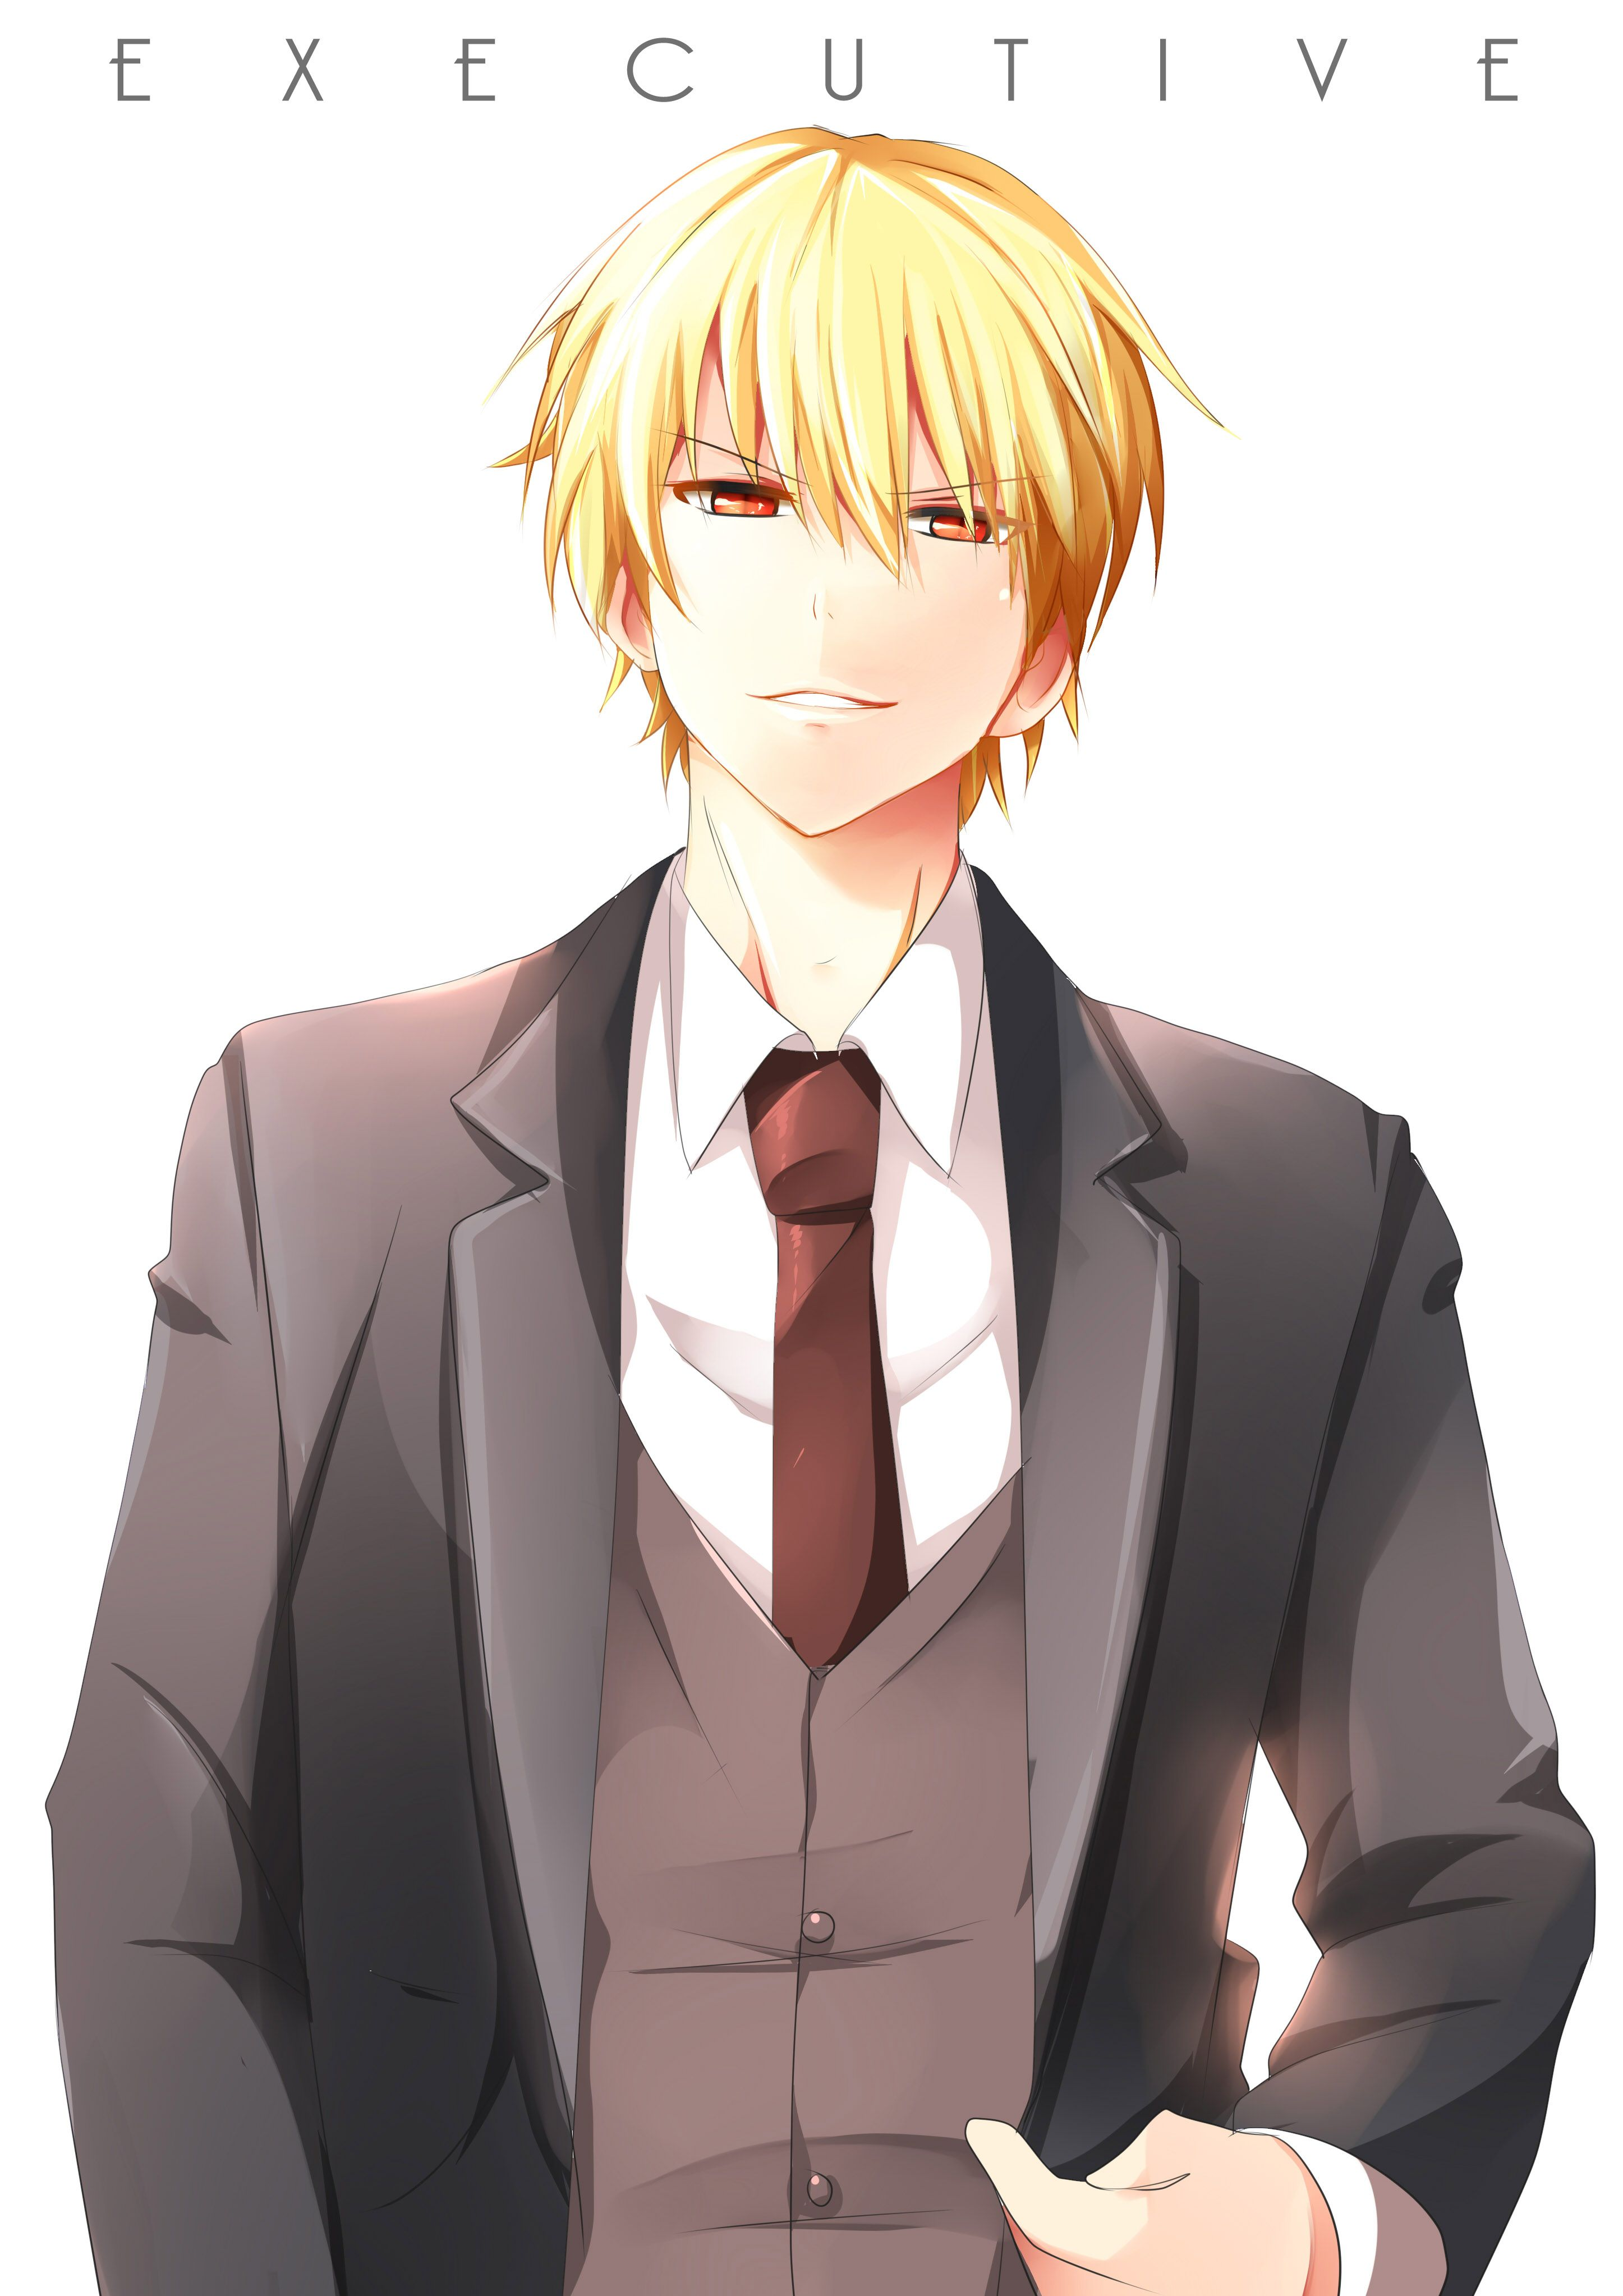 A King in suit Gilgamesh fate, Anime, Fate stay night